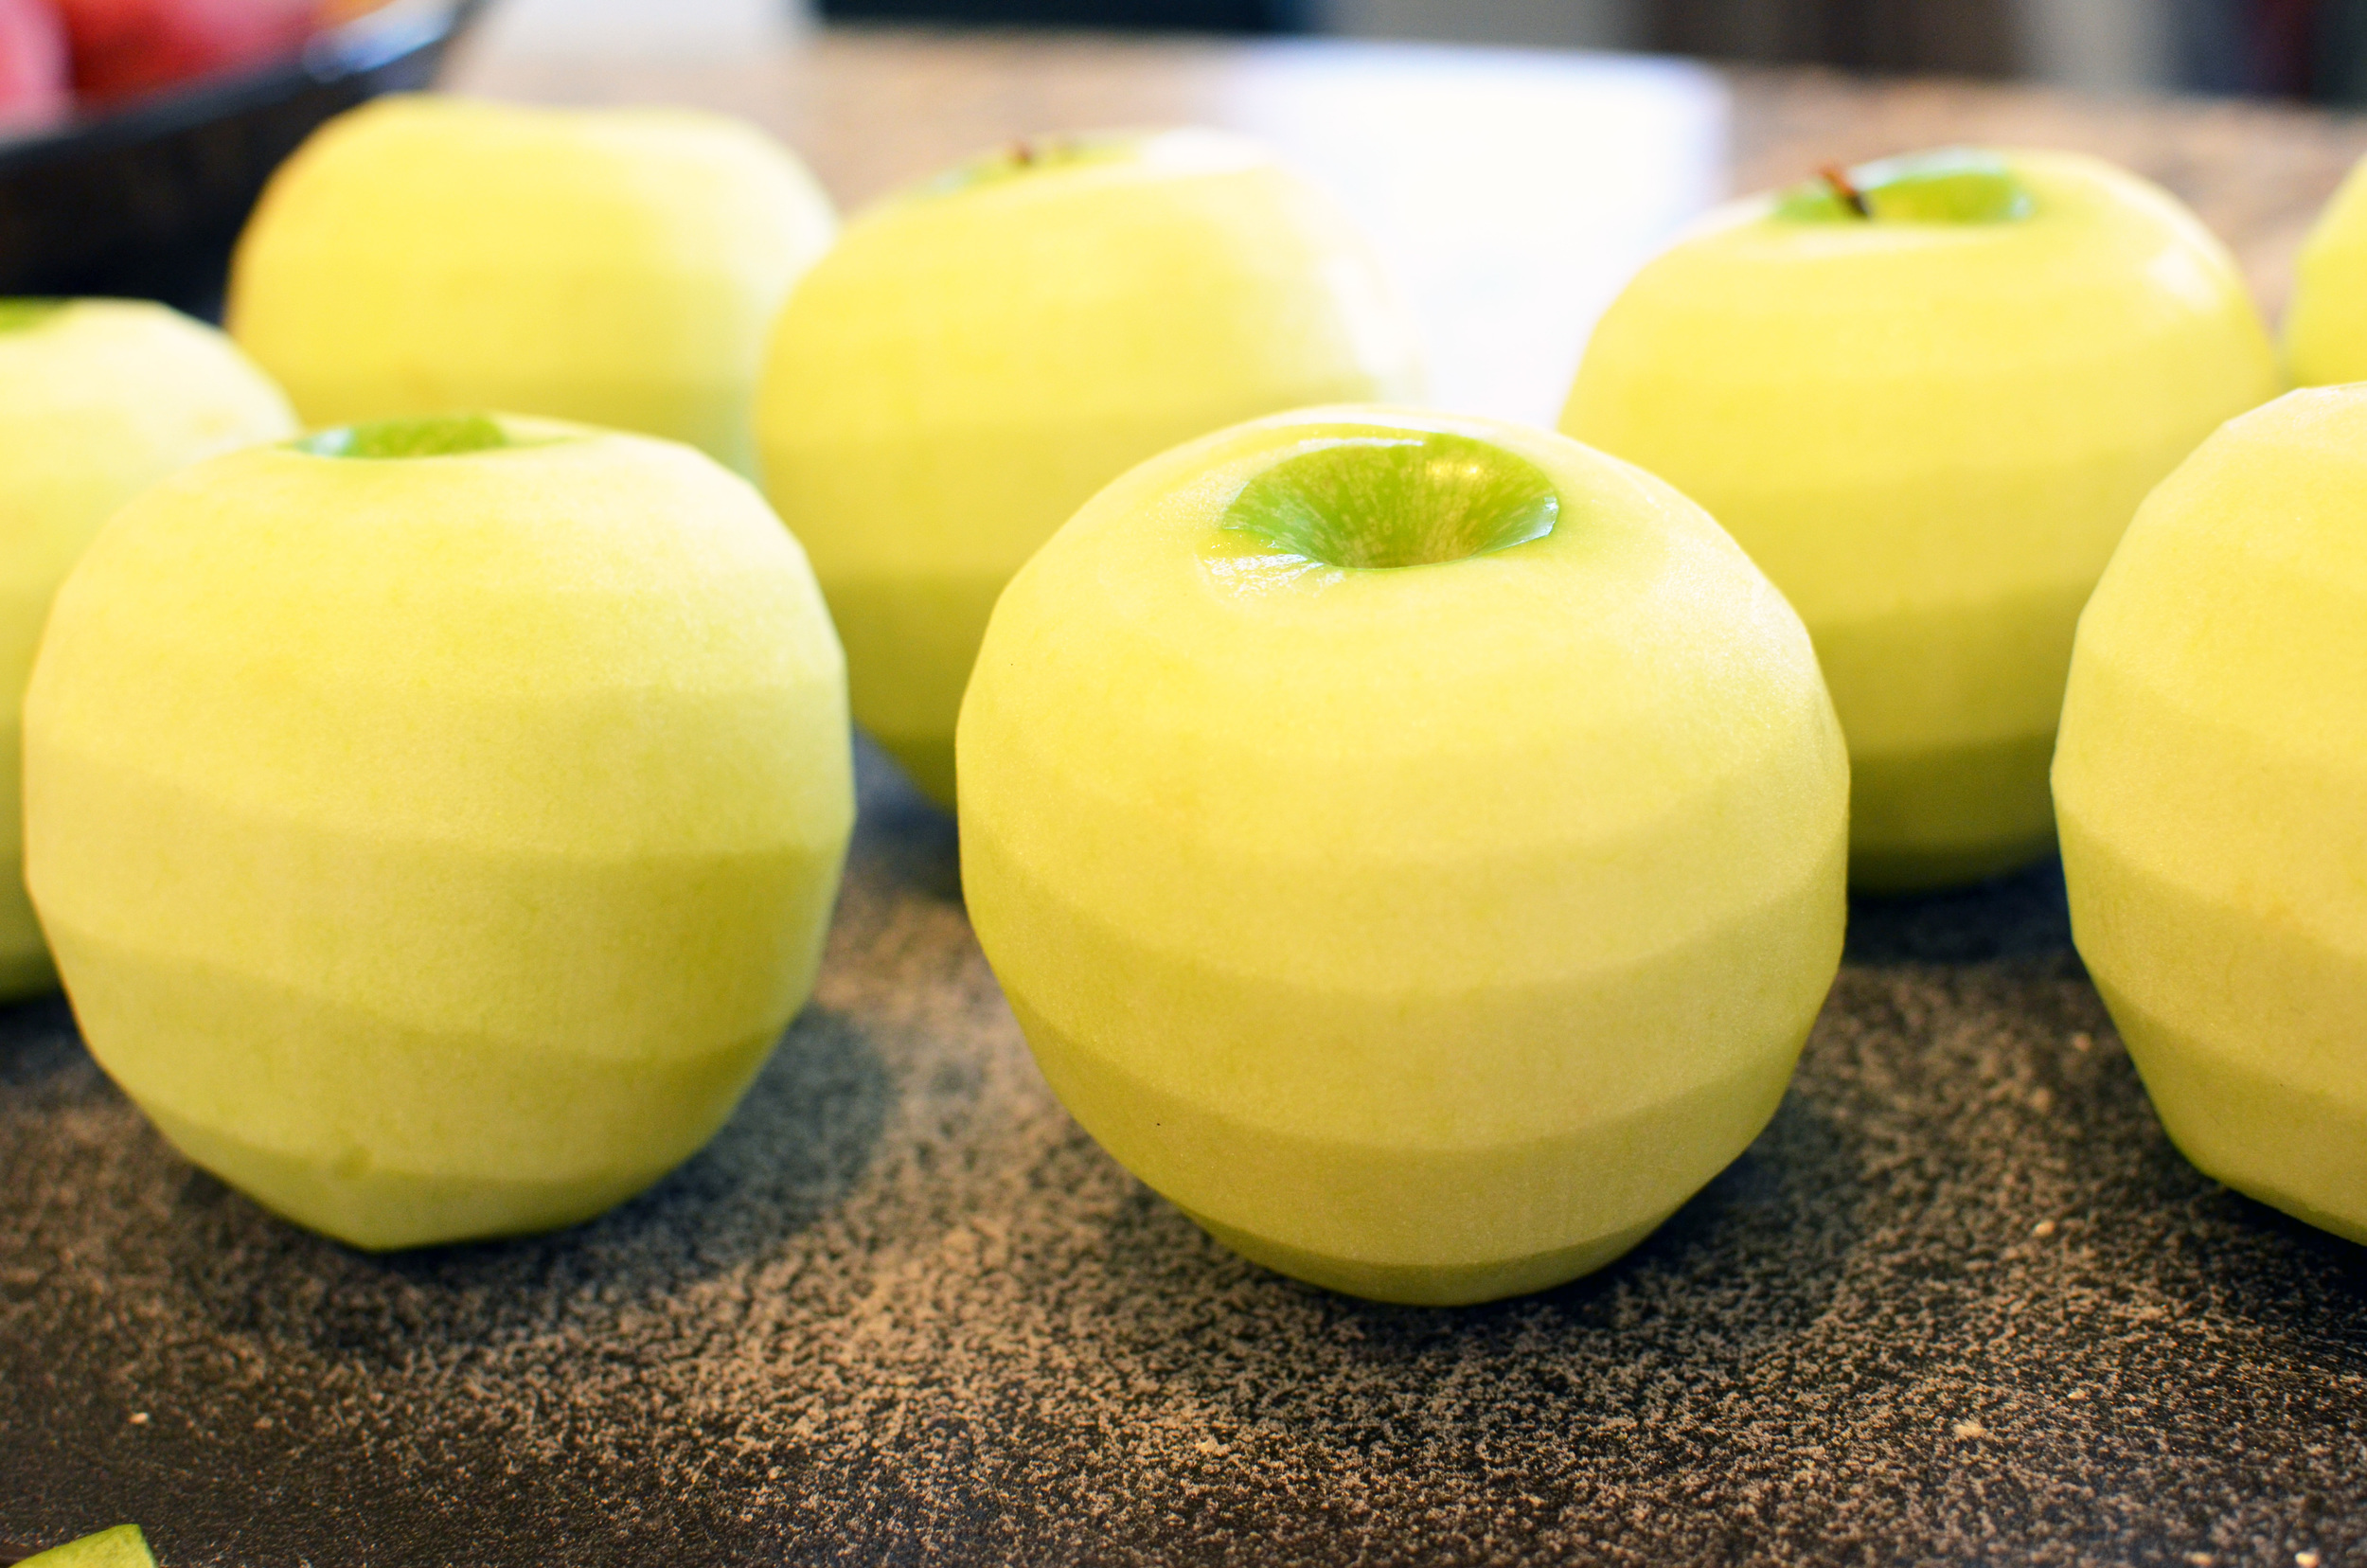 I peeled all these apples in about 2 minutes flat. Apple pie, here I come -love this little gadget!!